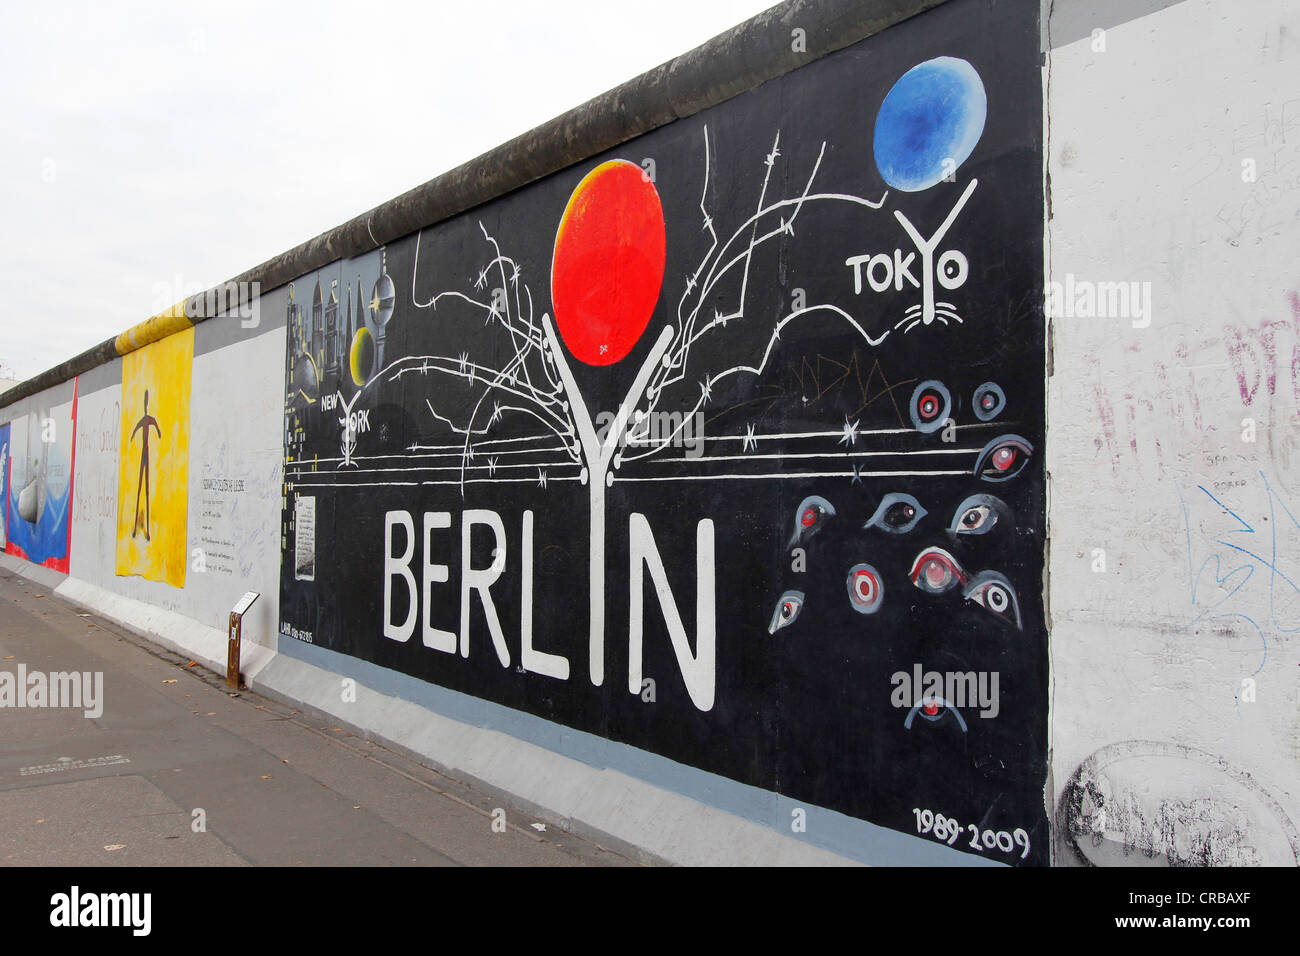 Quotberlynquot by gerhard lahr east side gallery berlin wall for Berlin wall art